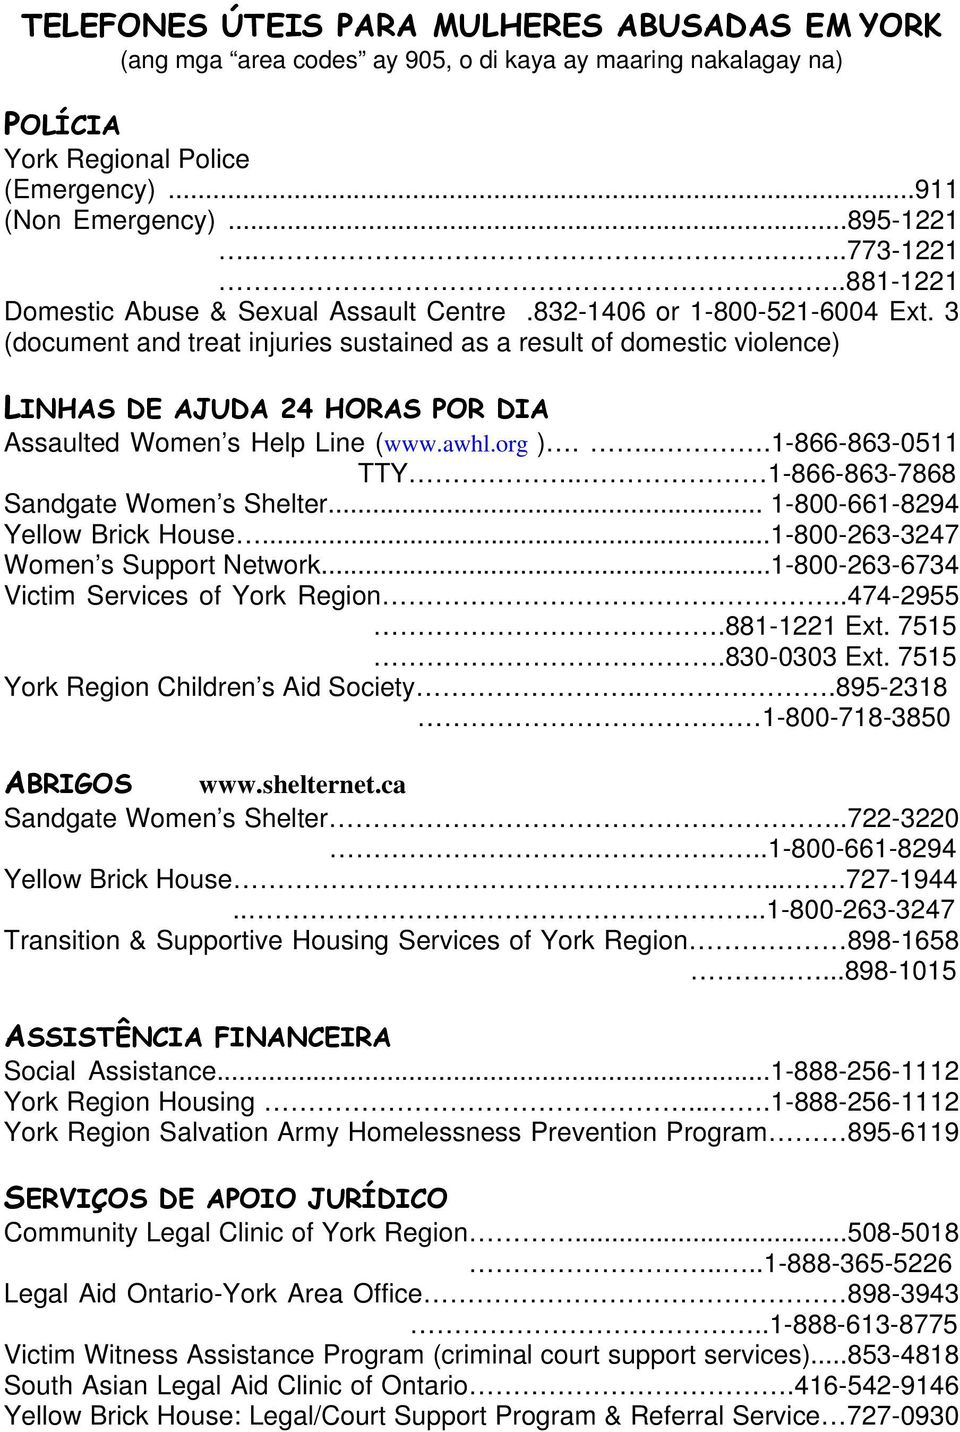 3 (document and treat injuries sustained as a result of domestic violence) LINHAS DE AJUDA 24 HORAS POR DIA Assaulted Women s Help Line (www.awhl.org )....1-866-863-0511 TTY.